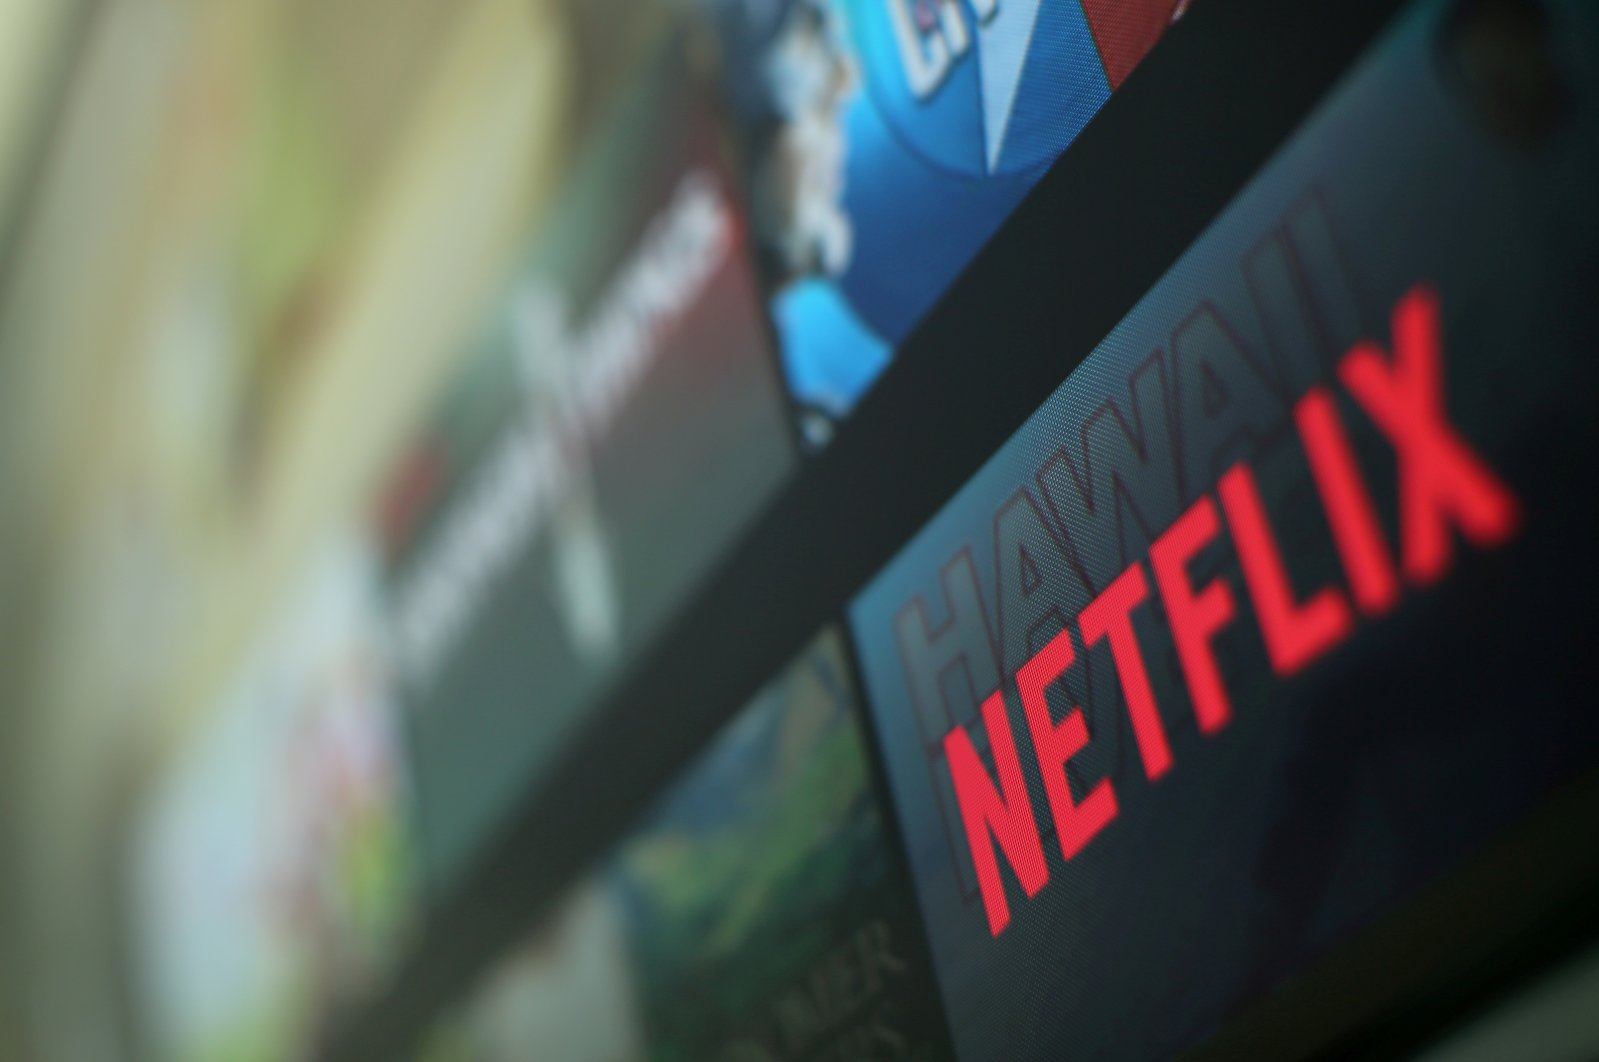 The Netflix logo is pictured on a television in this illustration photograph taken in Encinitas, California, U.S., Jan. 18, 2017. (Reuters Photo)